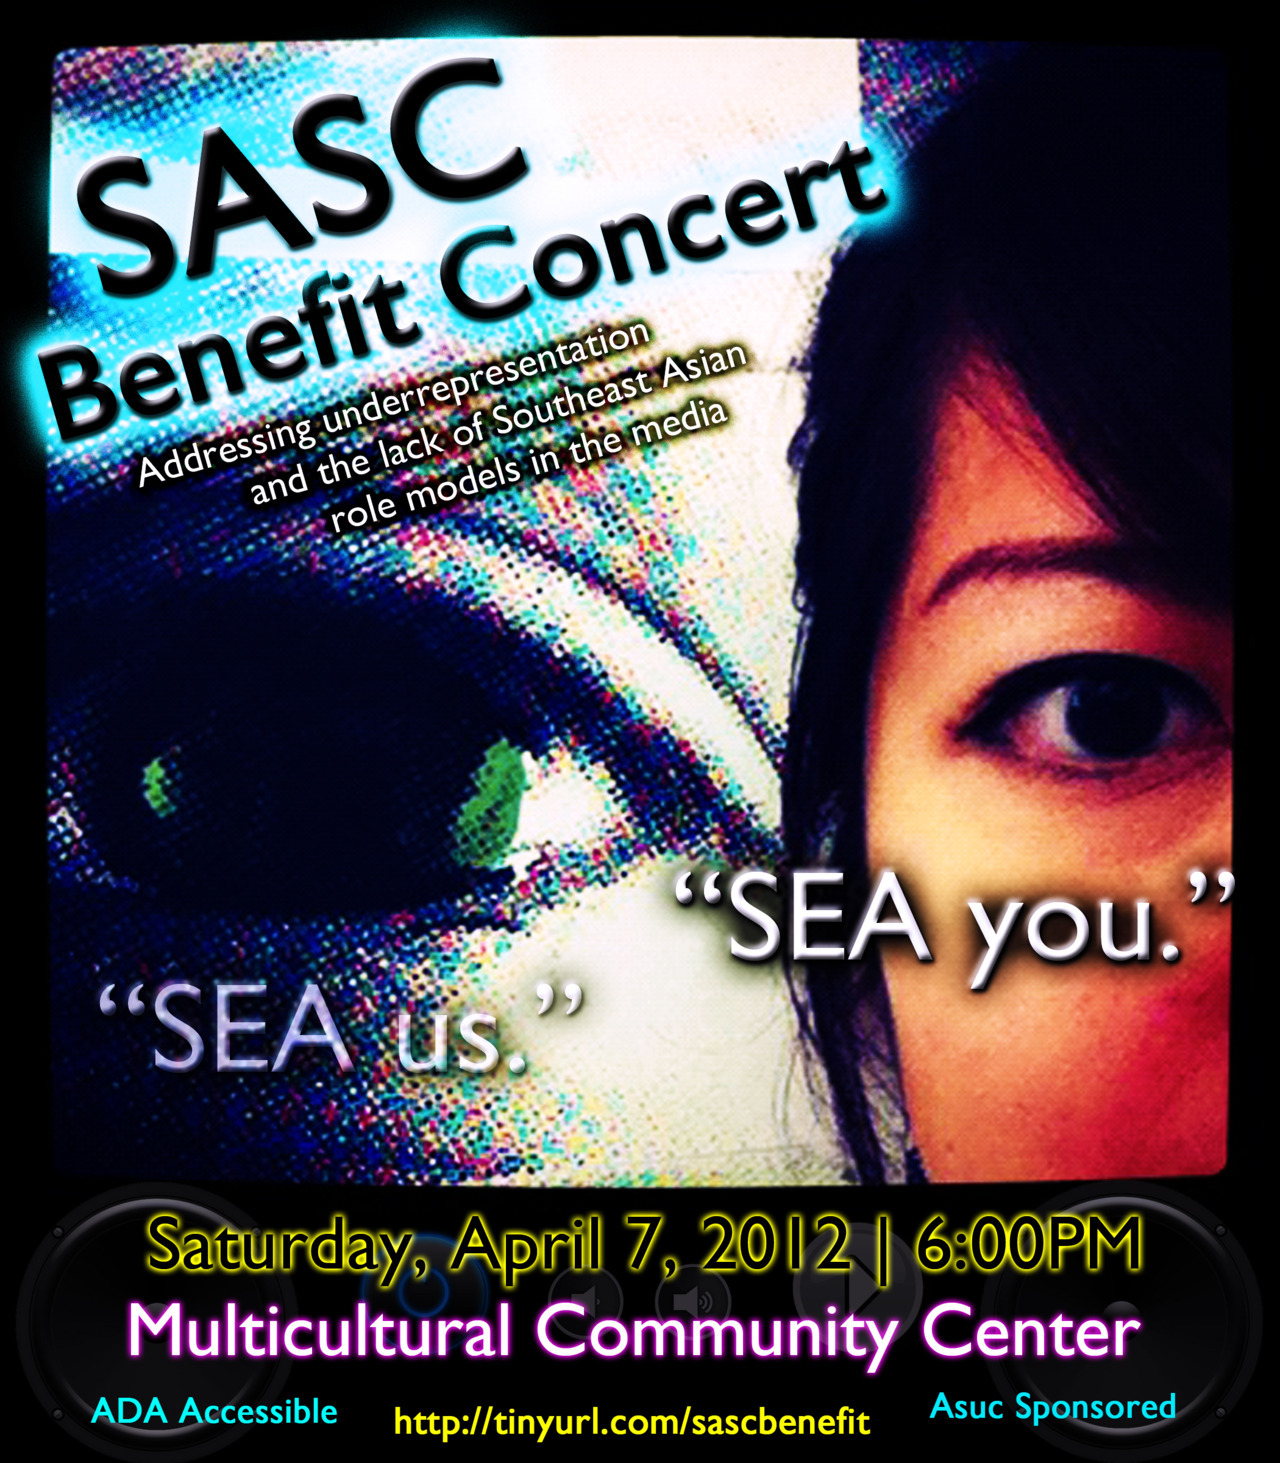 SASC Benefit Concert. Saturday, April 7, 2012. 6-10pm at UC Berkeley in the Multicultural Center. Come join this FREE night of entertainment and empowerment. Stay tuned for the performers list. For more information check out the Facebook Event Page. ___ The Green Papaya is a community blog and online forum where the Southeast Asian community may share its stories. Its goal is to provide an online space that engages the SEA community, fosters voices within that community, and also raise awareness about that community. Click here if you wish to submit a post.